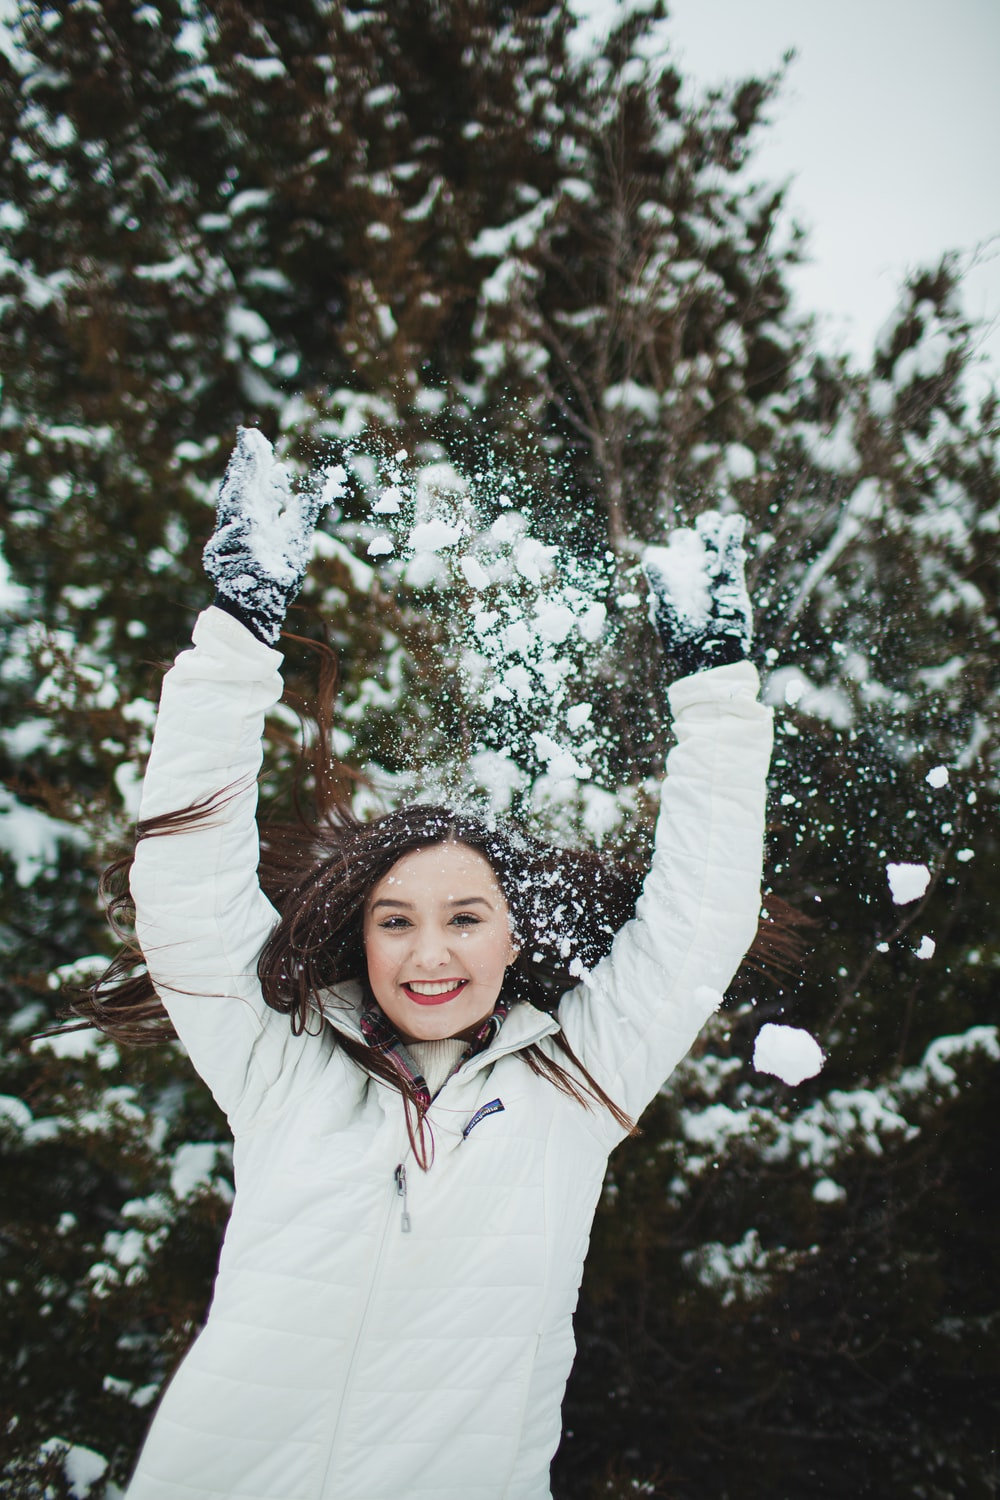 girl in white jacket standing near tree with snow